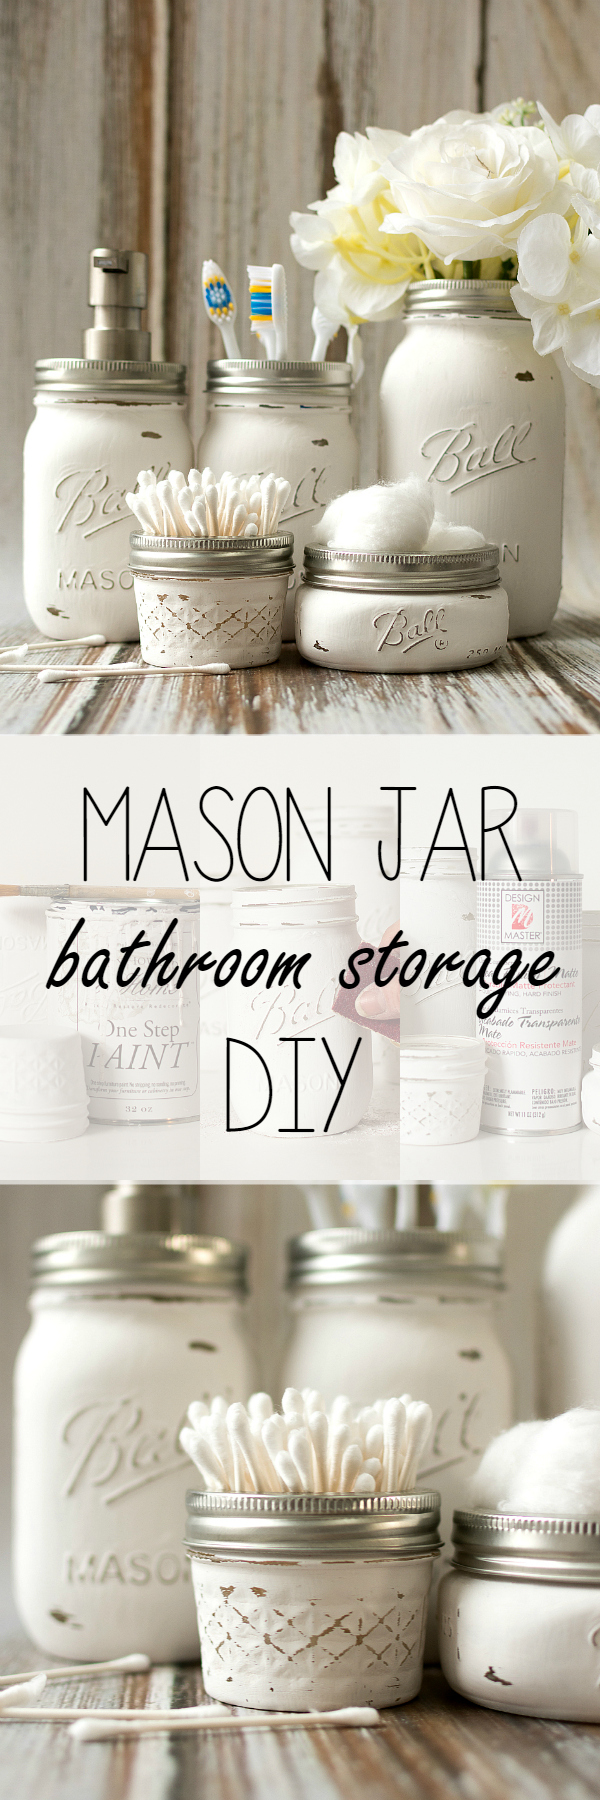 DIY Bathroom Organizer Ideas - Do it Yourself Pretty Distressed Mason Jar Bathroom Organizers Craft Project Tutorial via Mason Jar Crafts Love #bathroomorganization #bathroomideas #bathroomhacks #bathroomtips #organizethebathroom